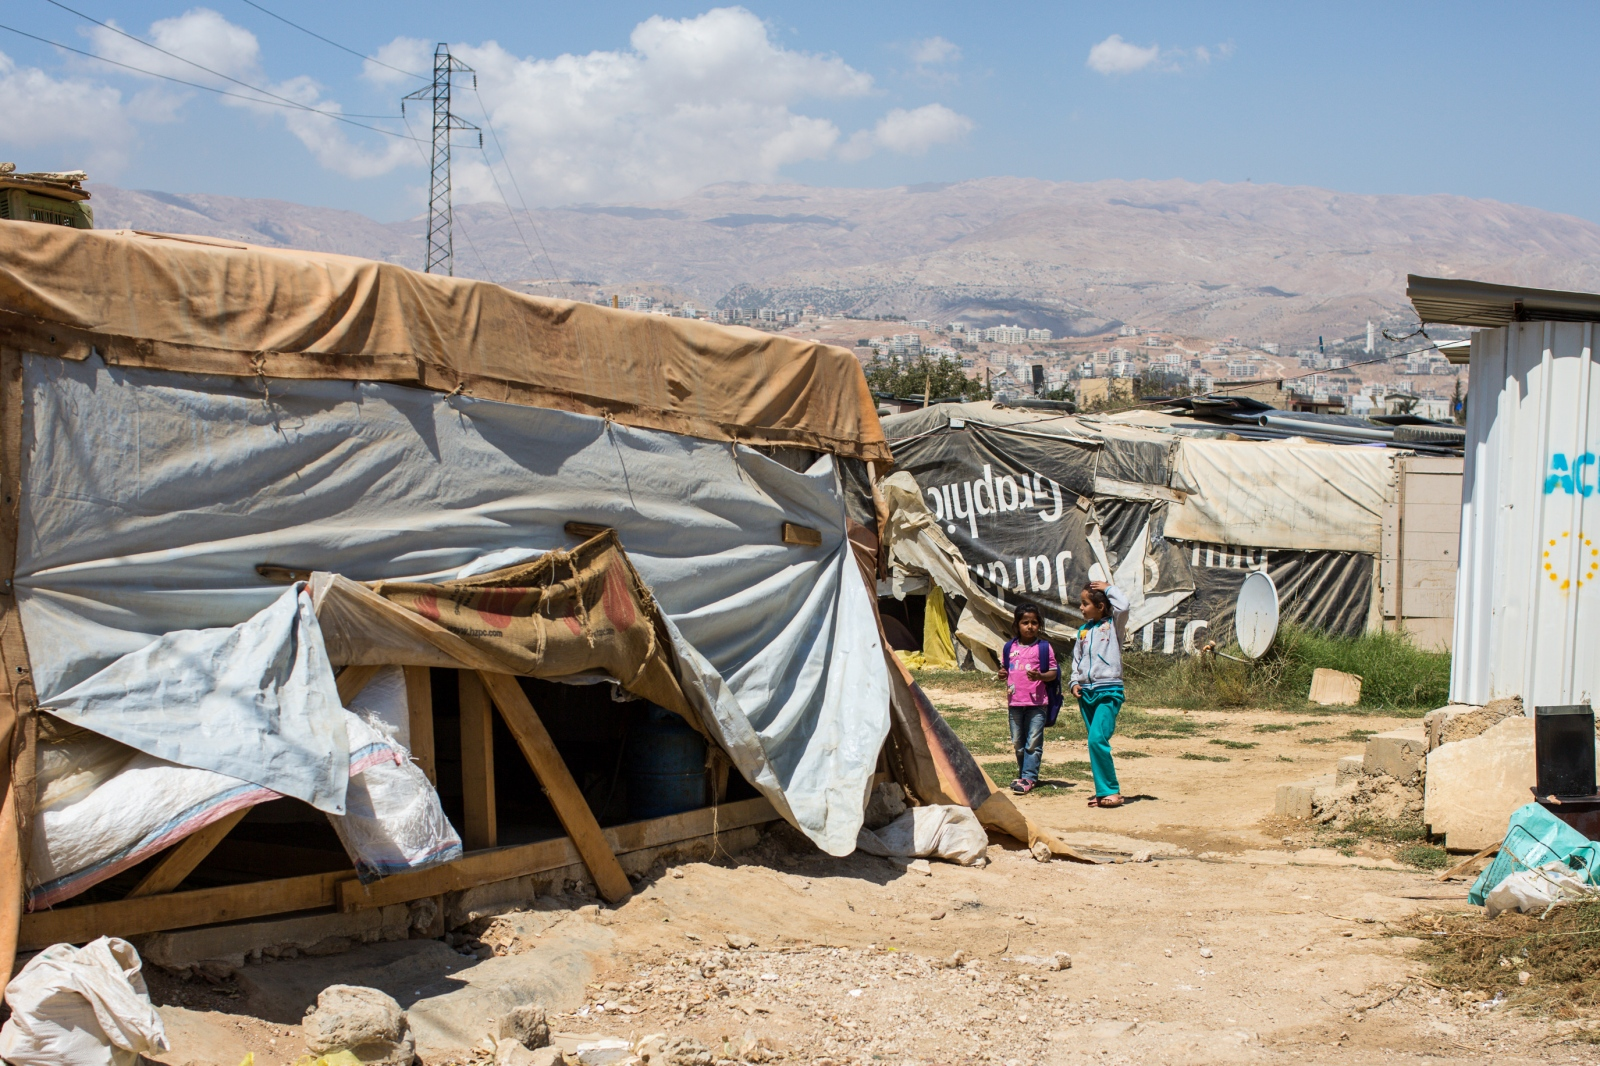 Bekaa Valley, LEBANON, September 5, 2014: Children walk through an informal settlement for Syrian refugees in Lebanon's Bekaa Valley. UNICEF reports that 6.5 million Syrian children have been affected by the Syrian war. 2.8 million children are no longer in school and more than one million are living as refugees in neighboring countries.